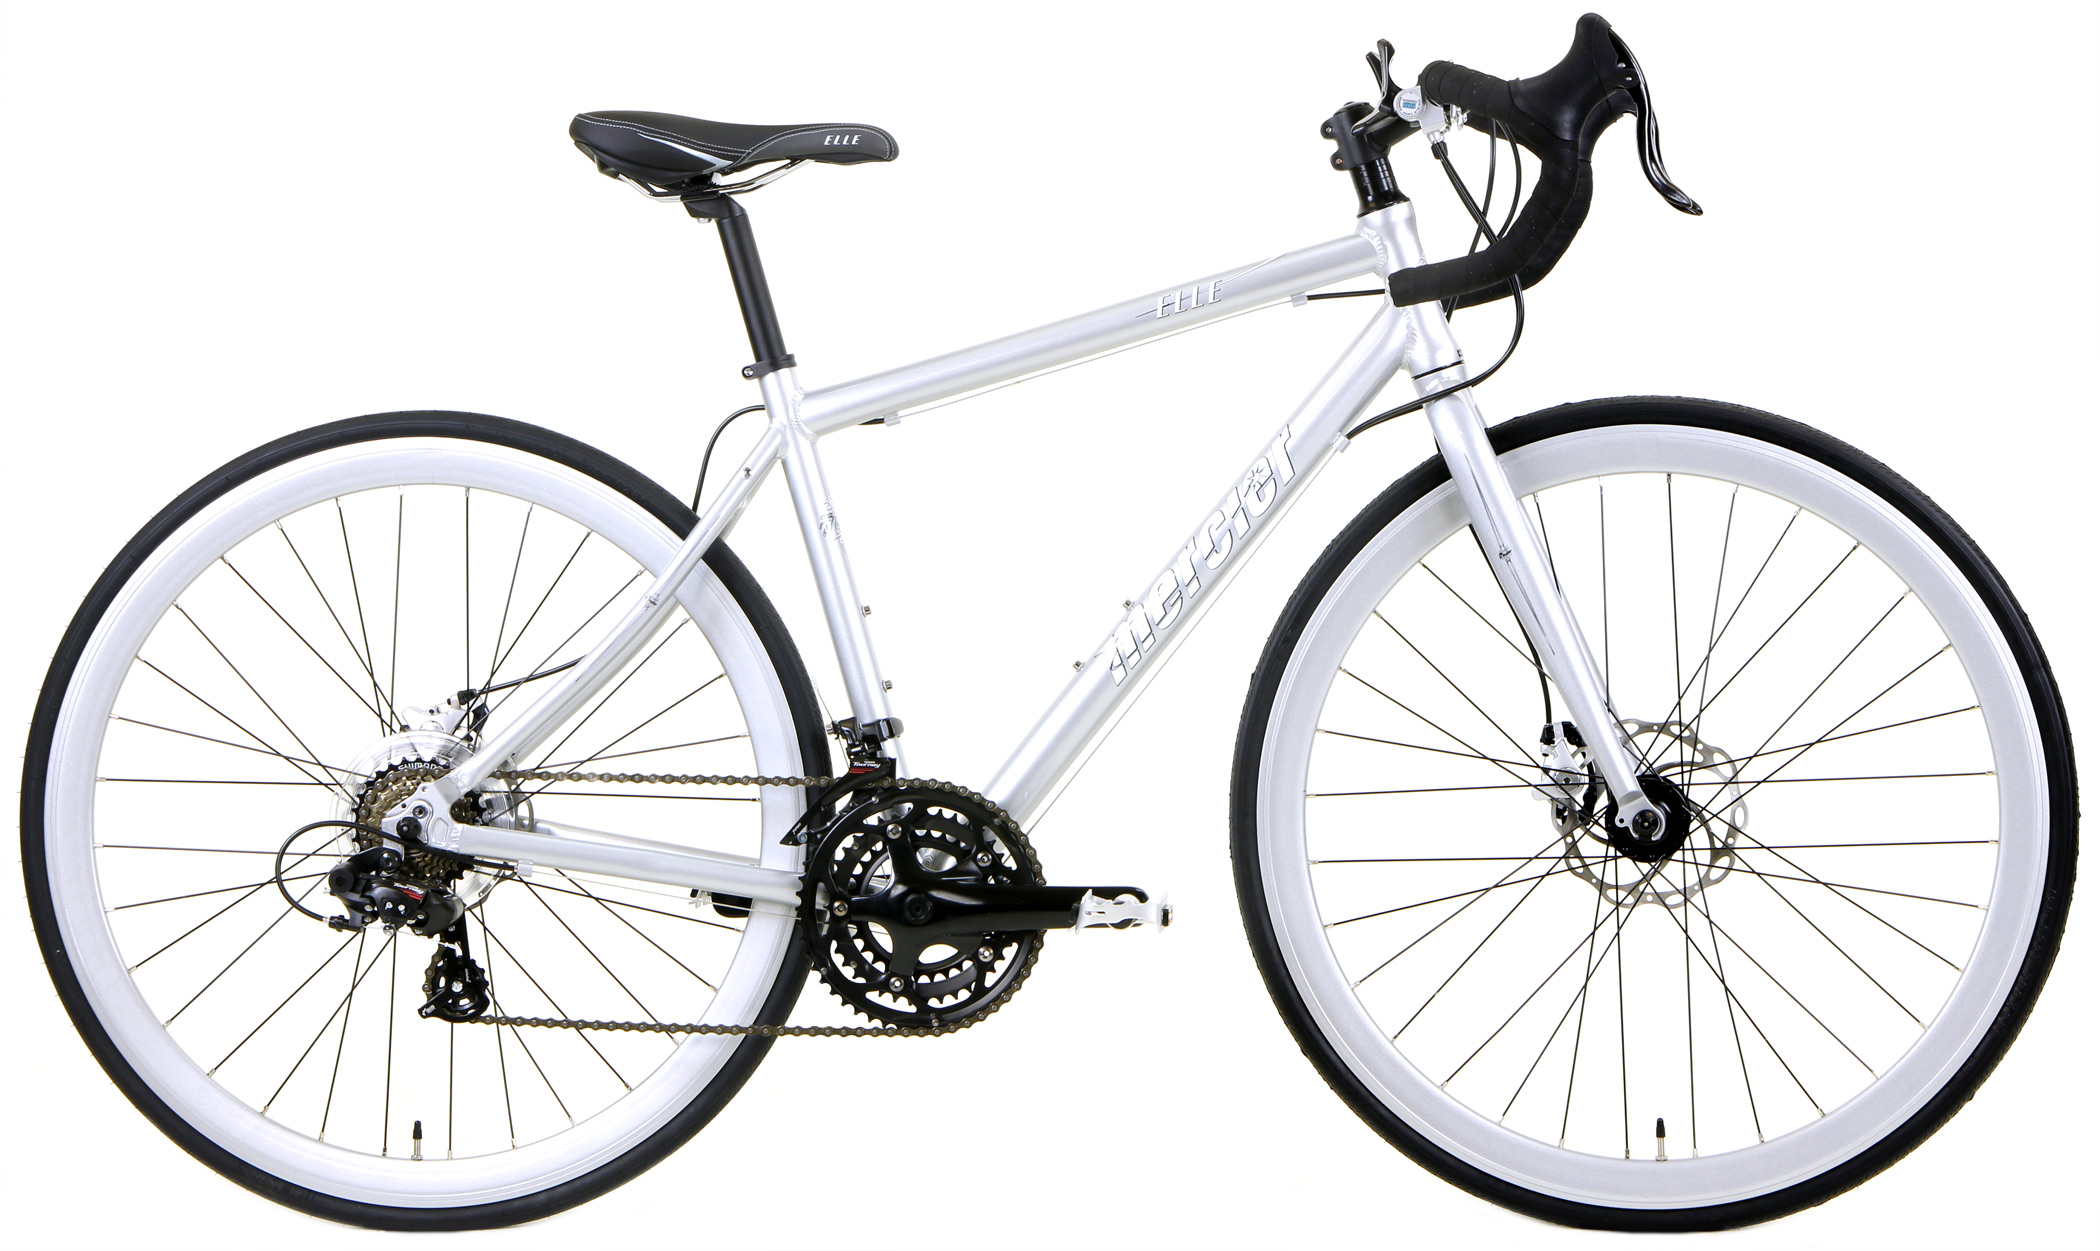 Save Up to 60% Off Women Specific Disc Brake Road Bikes